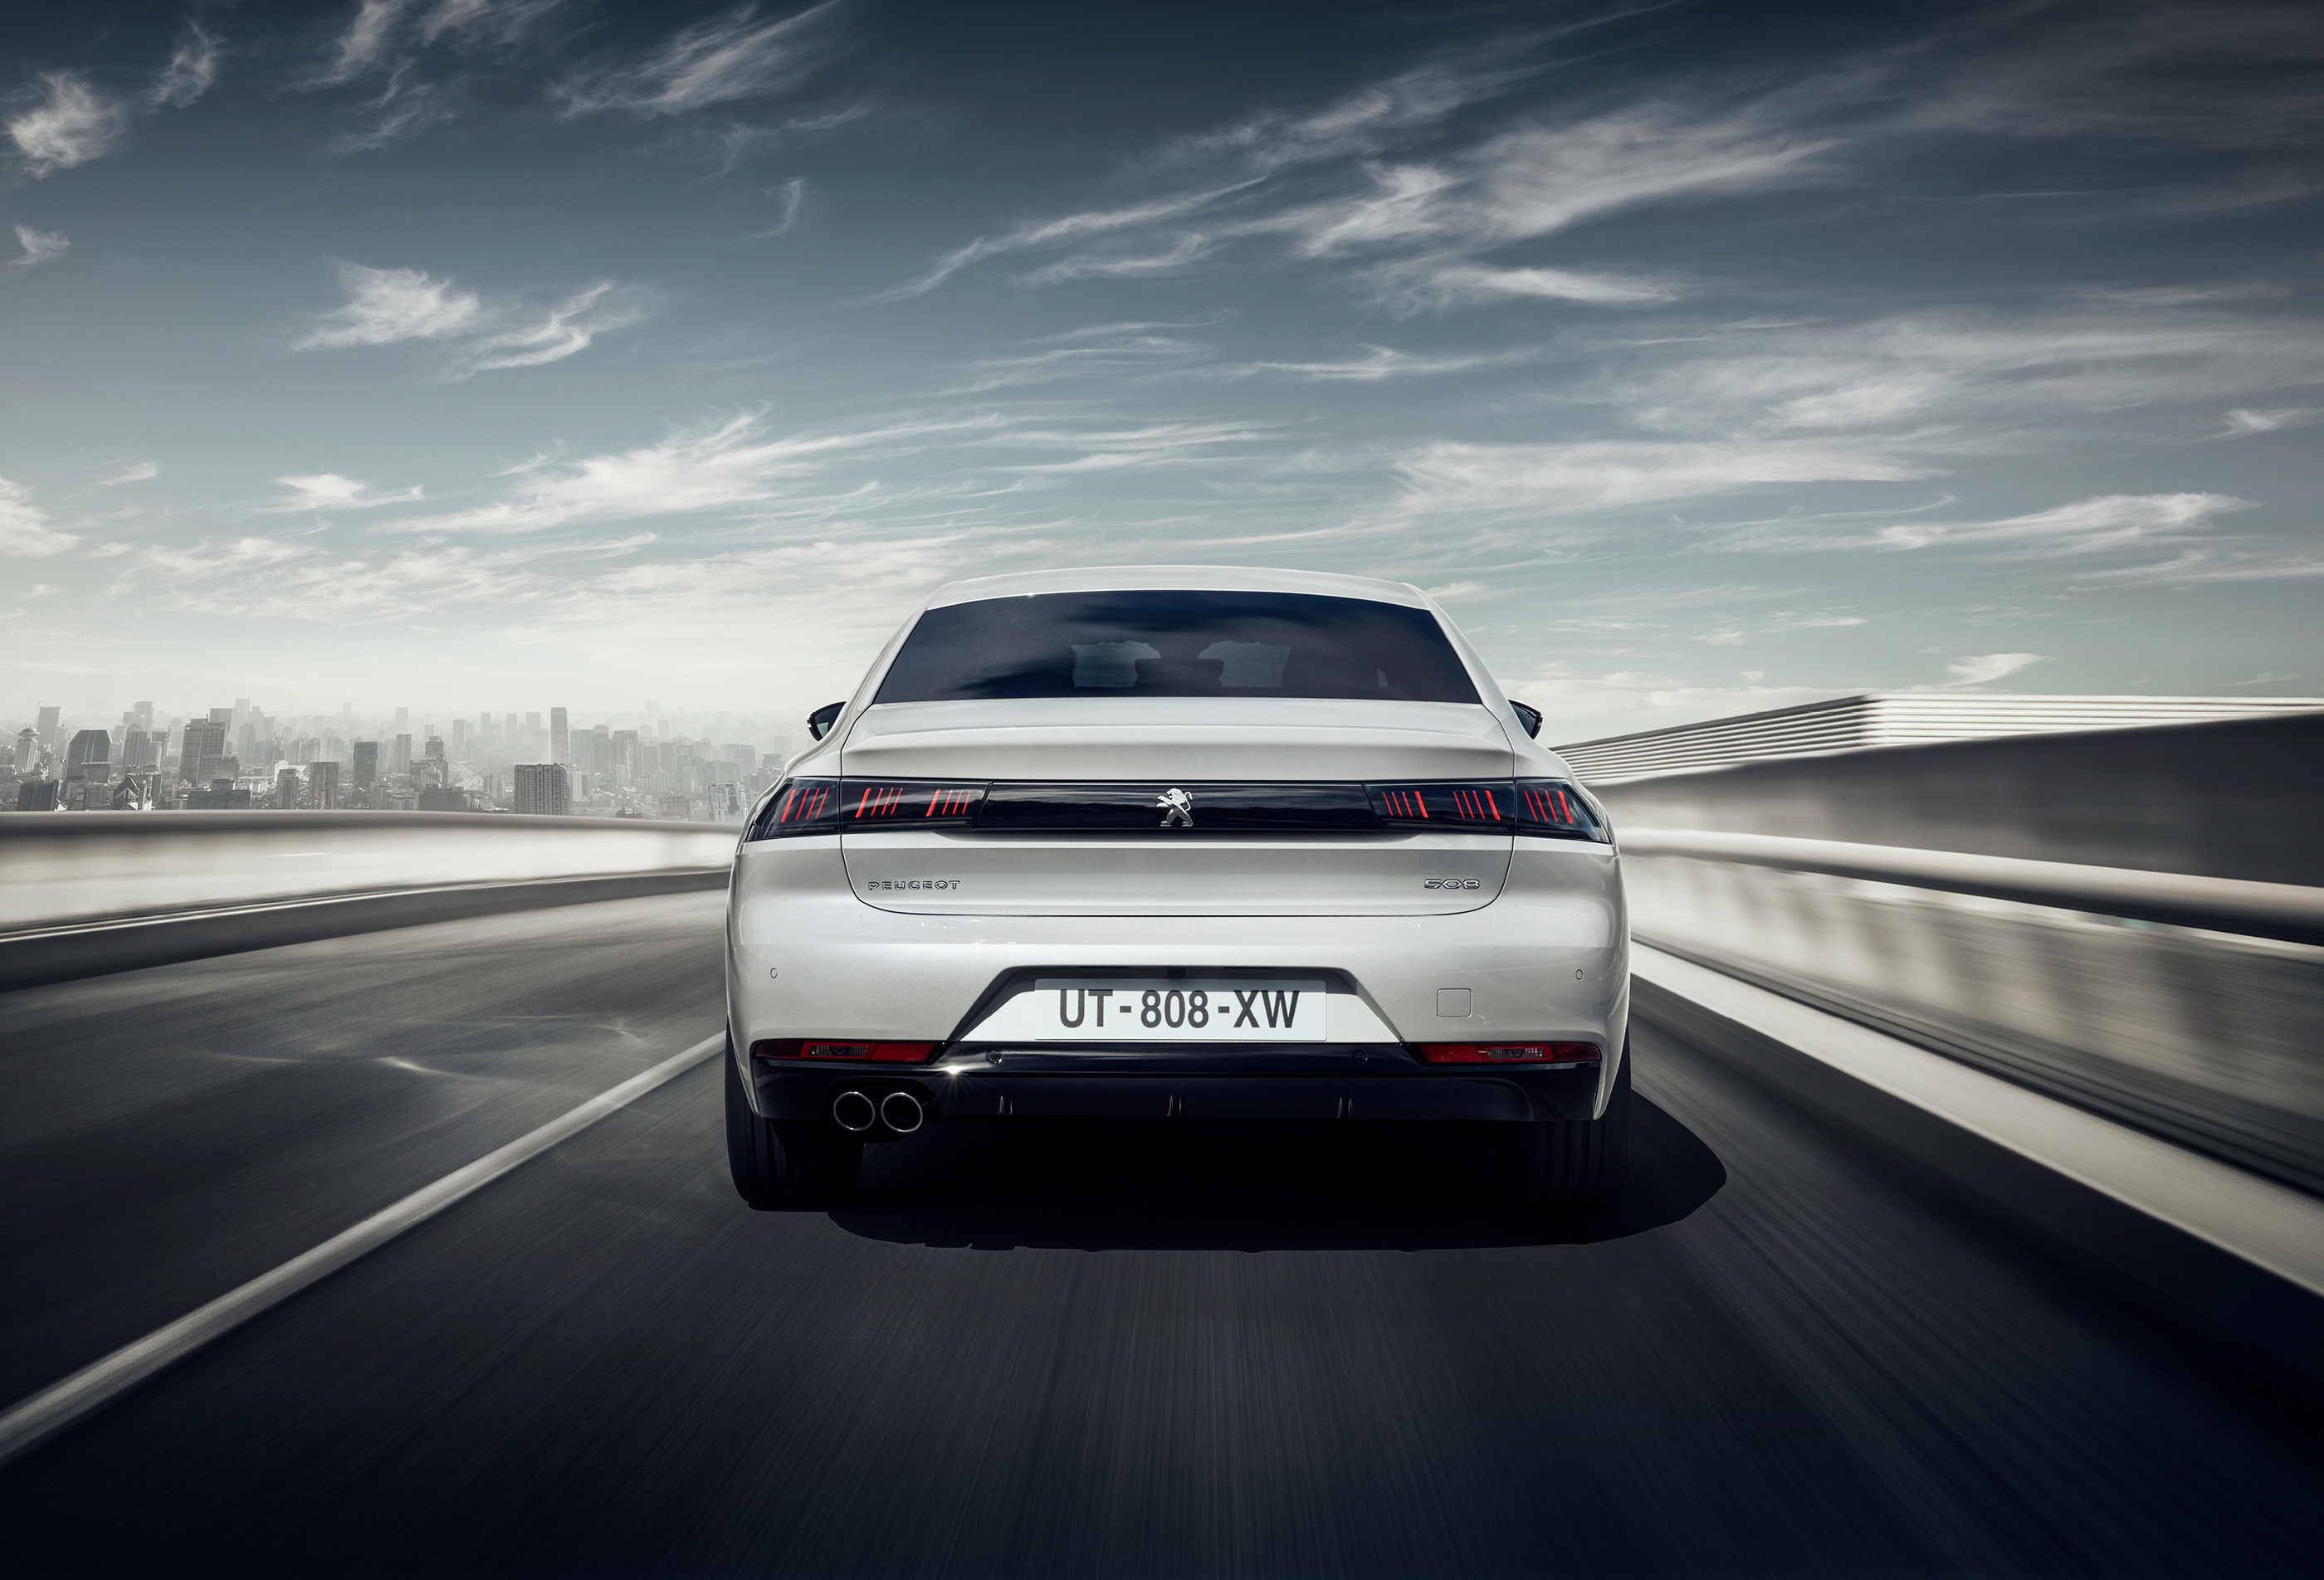 Peugeot 508 Rear 2018, HD Cars, 4k Wallpapers, Images